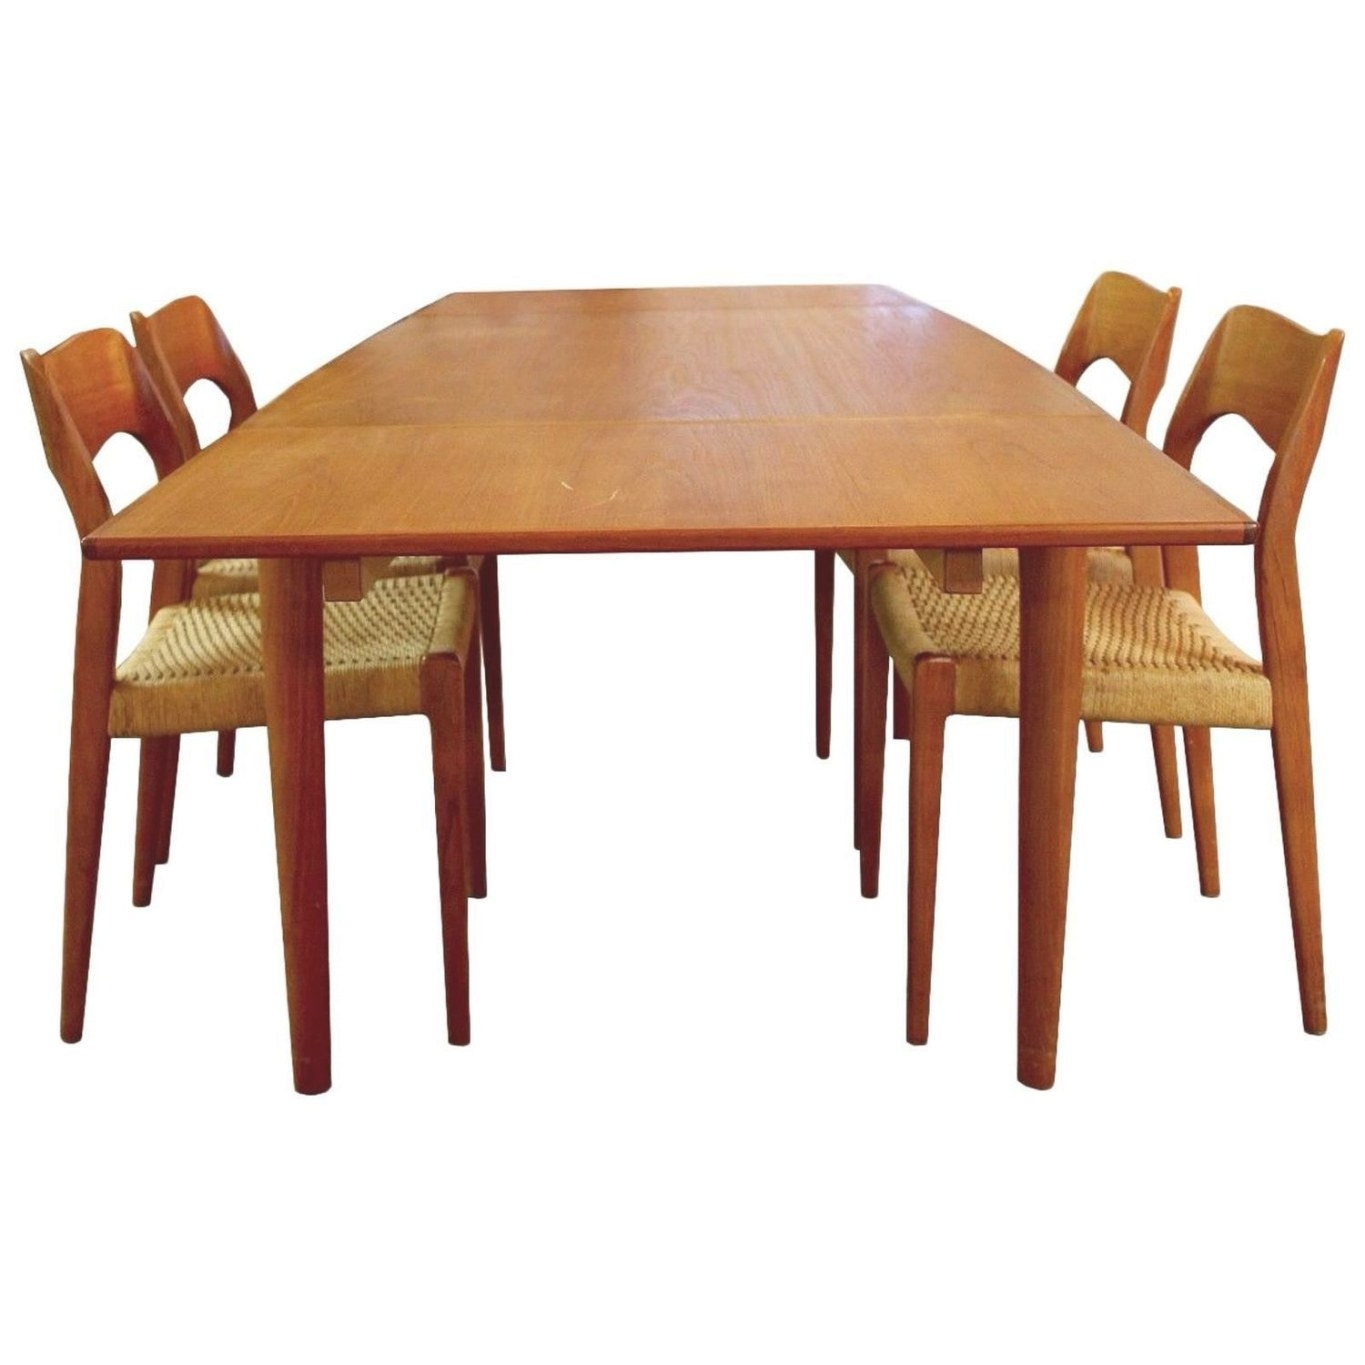 Mid-Century Modern Danish Teak Niels Moller Expandable throughout Mid Century Dining Table